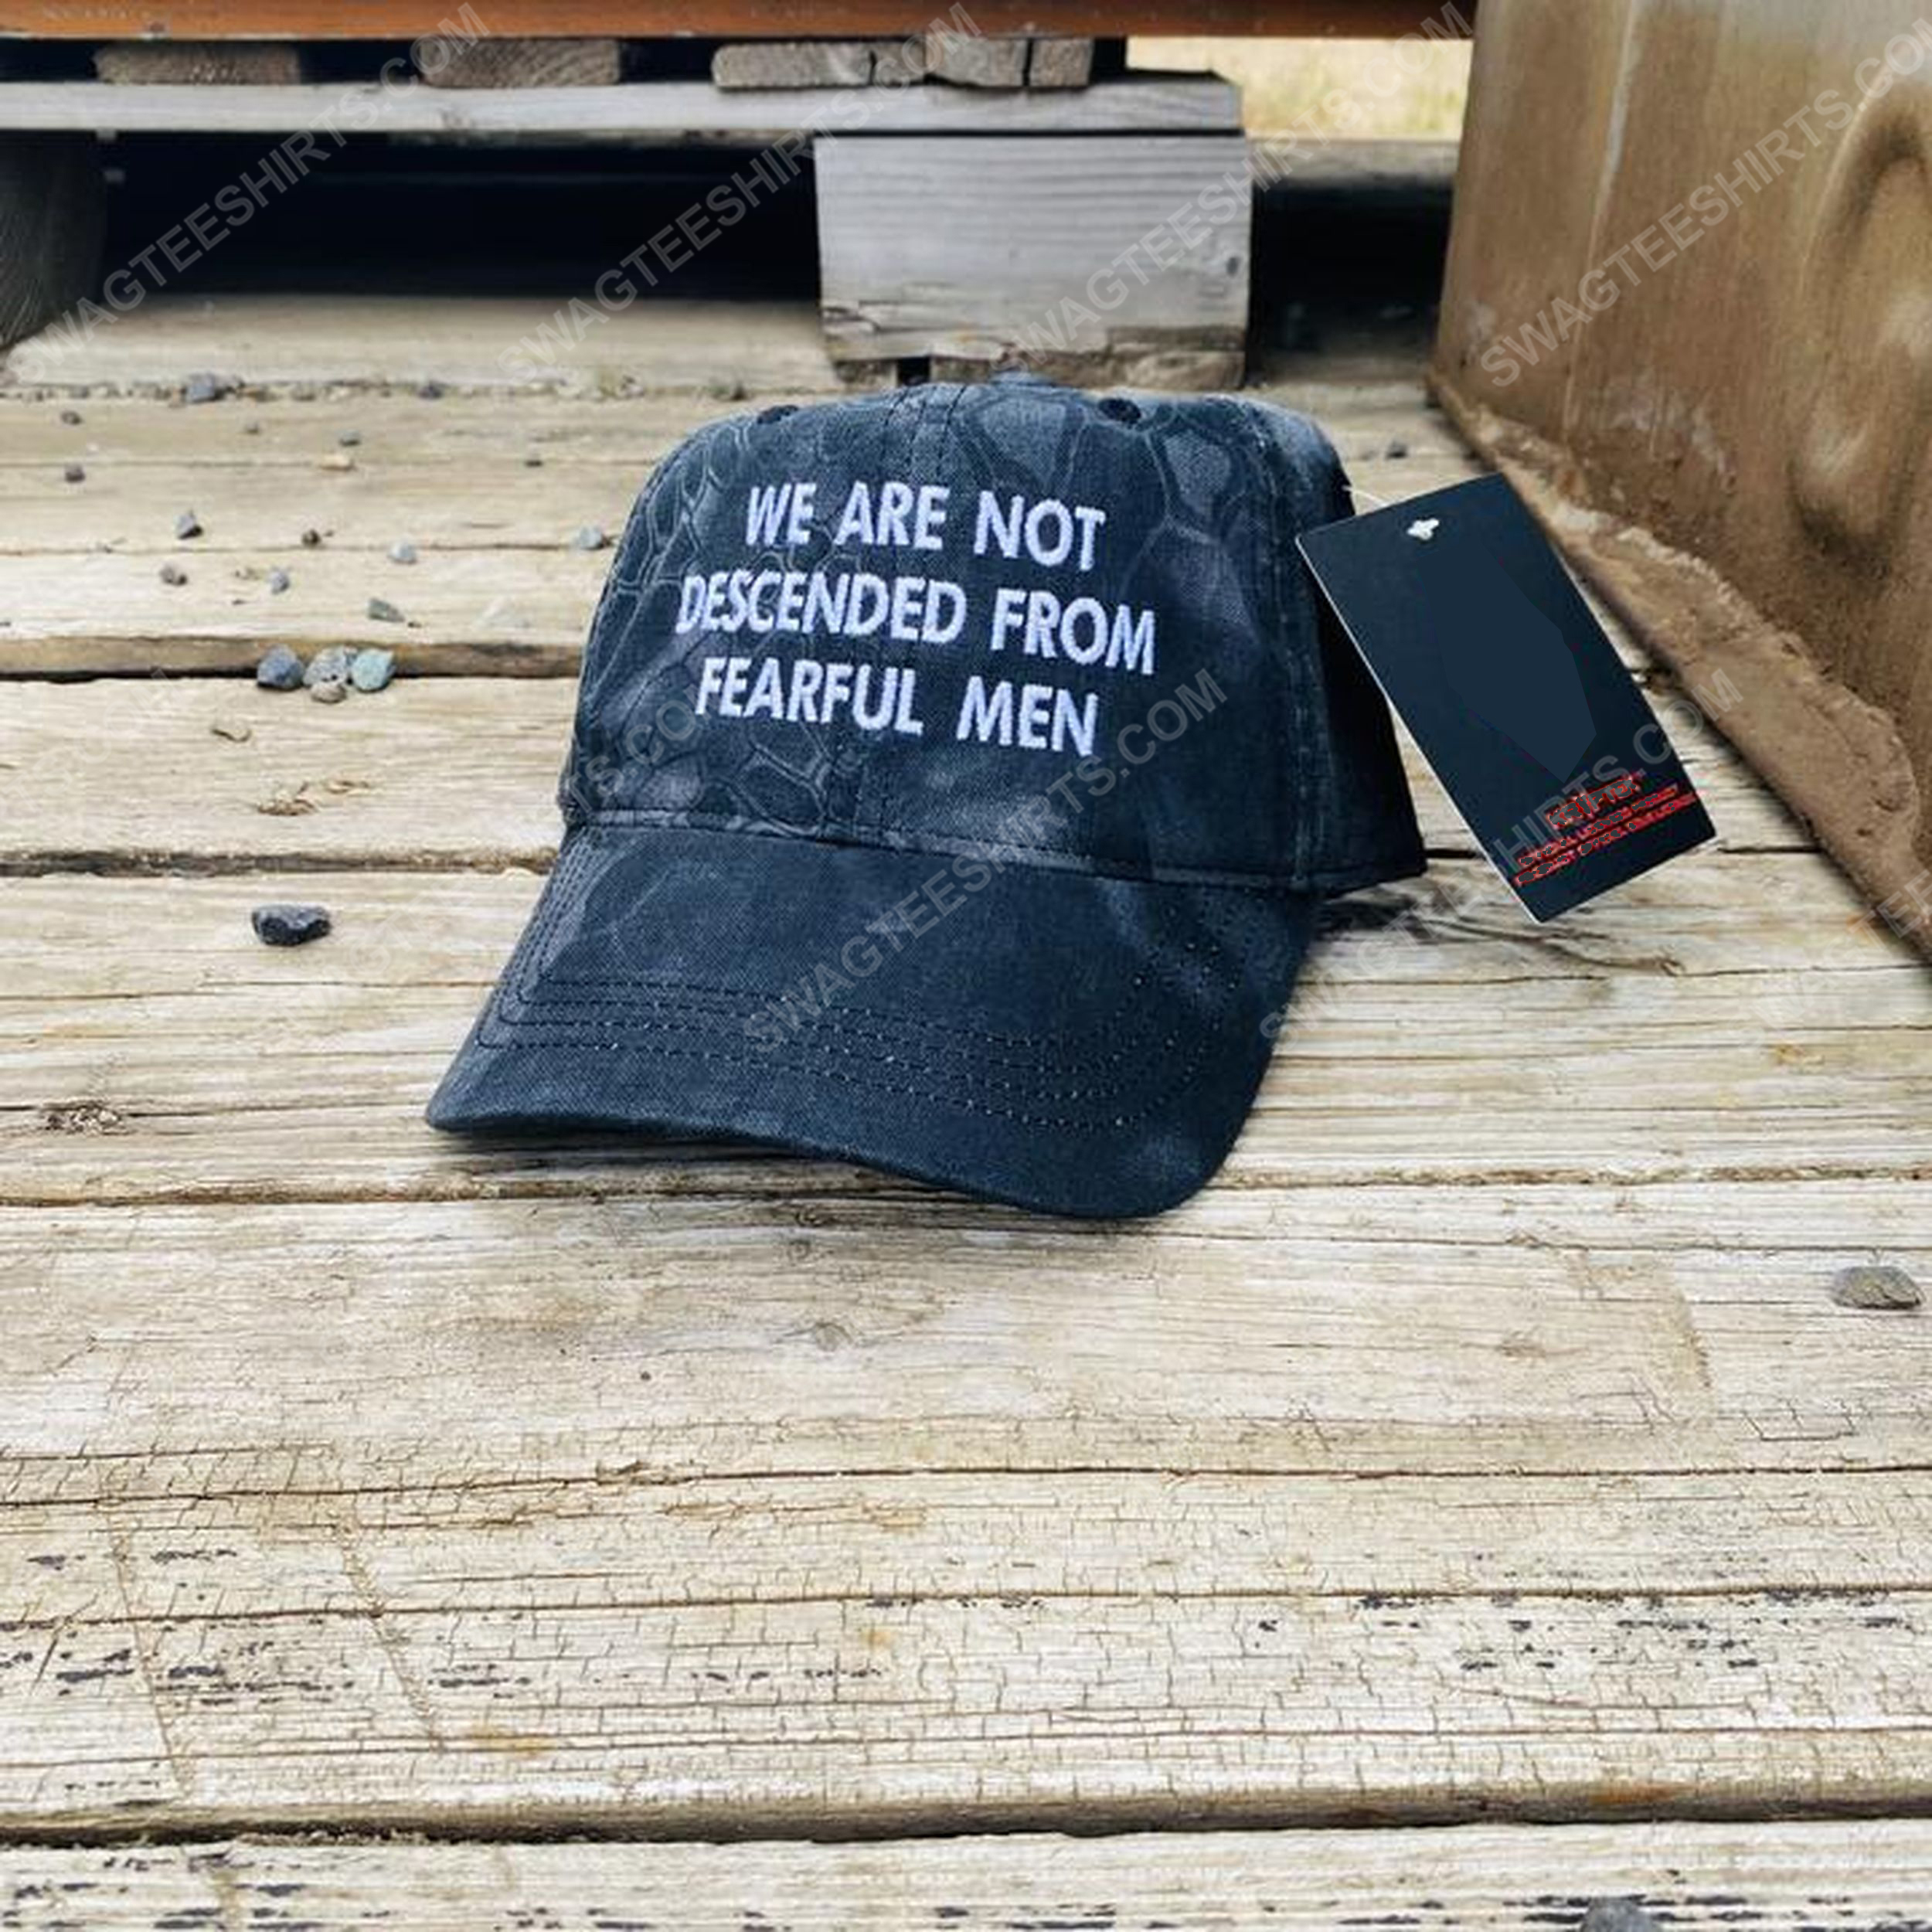 We are not descended from fearful men full print classic hat 1 - Copy (2)